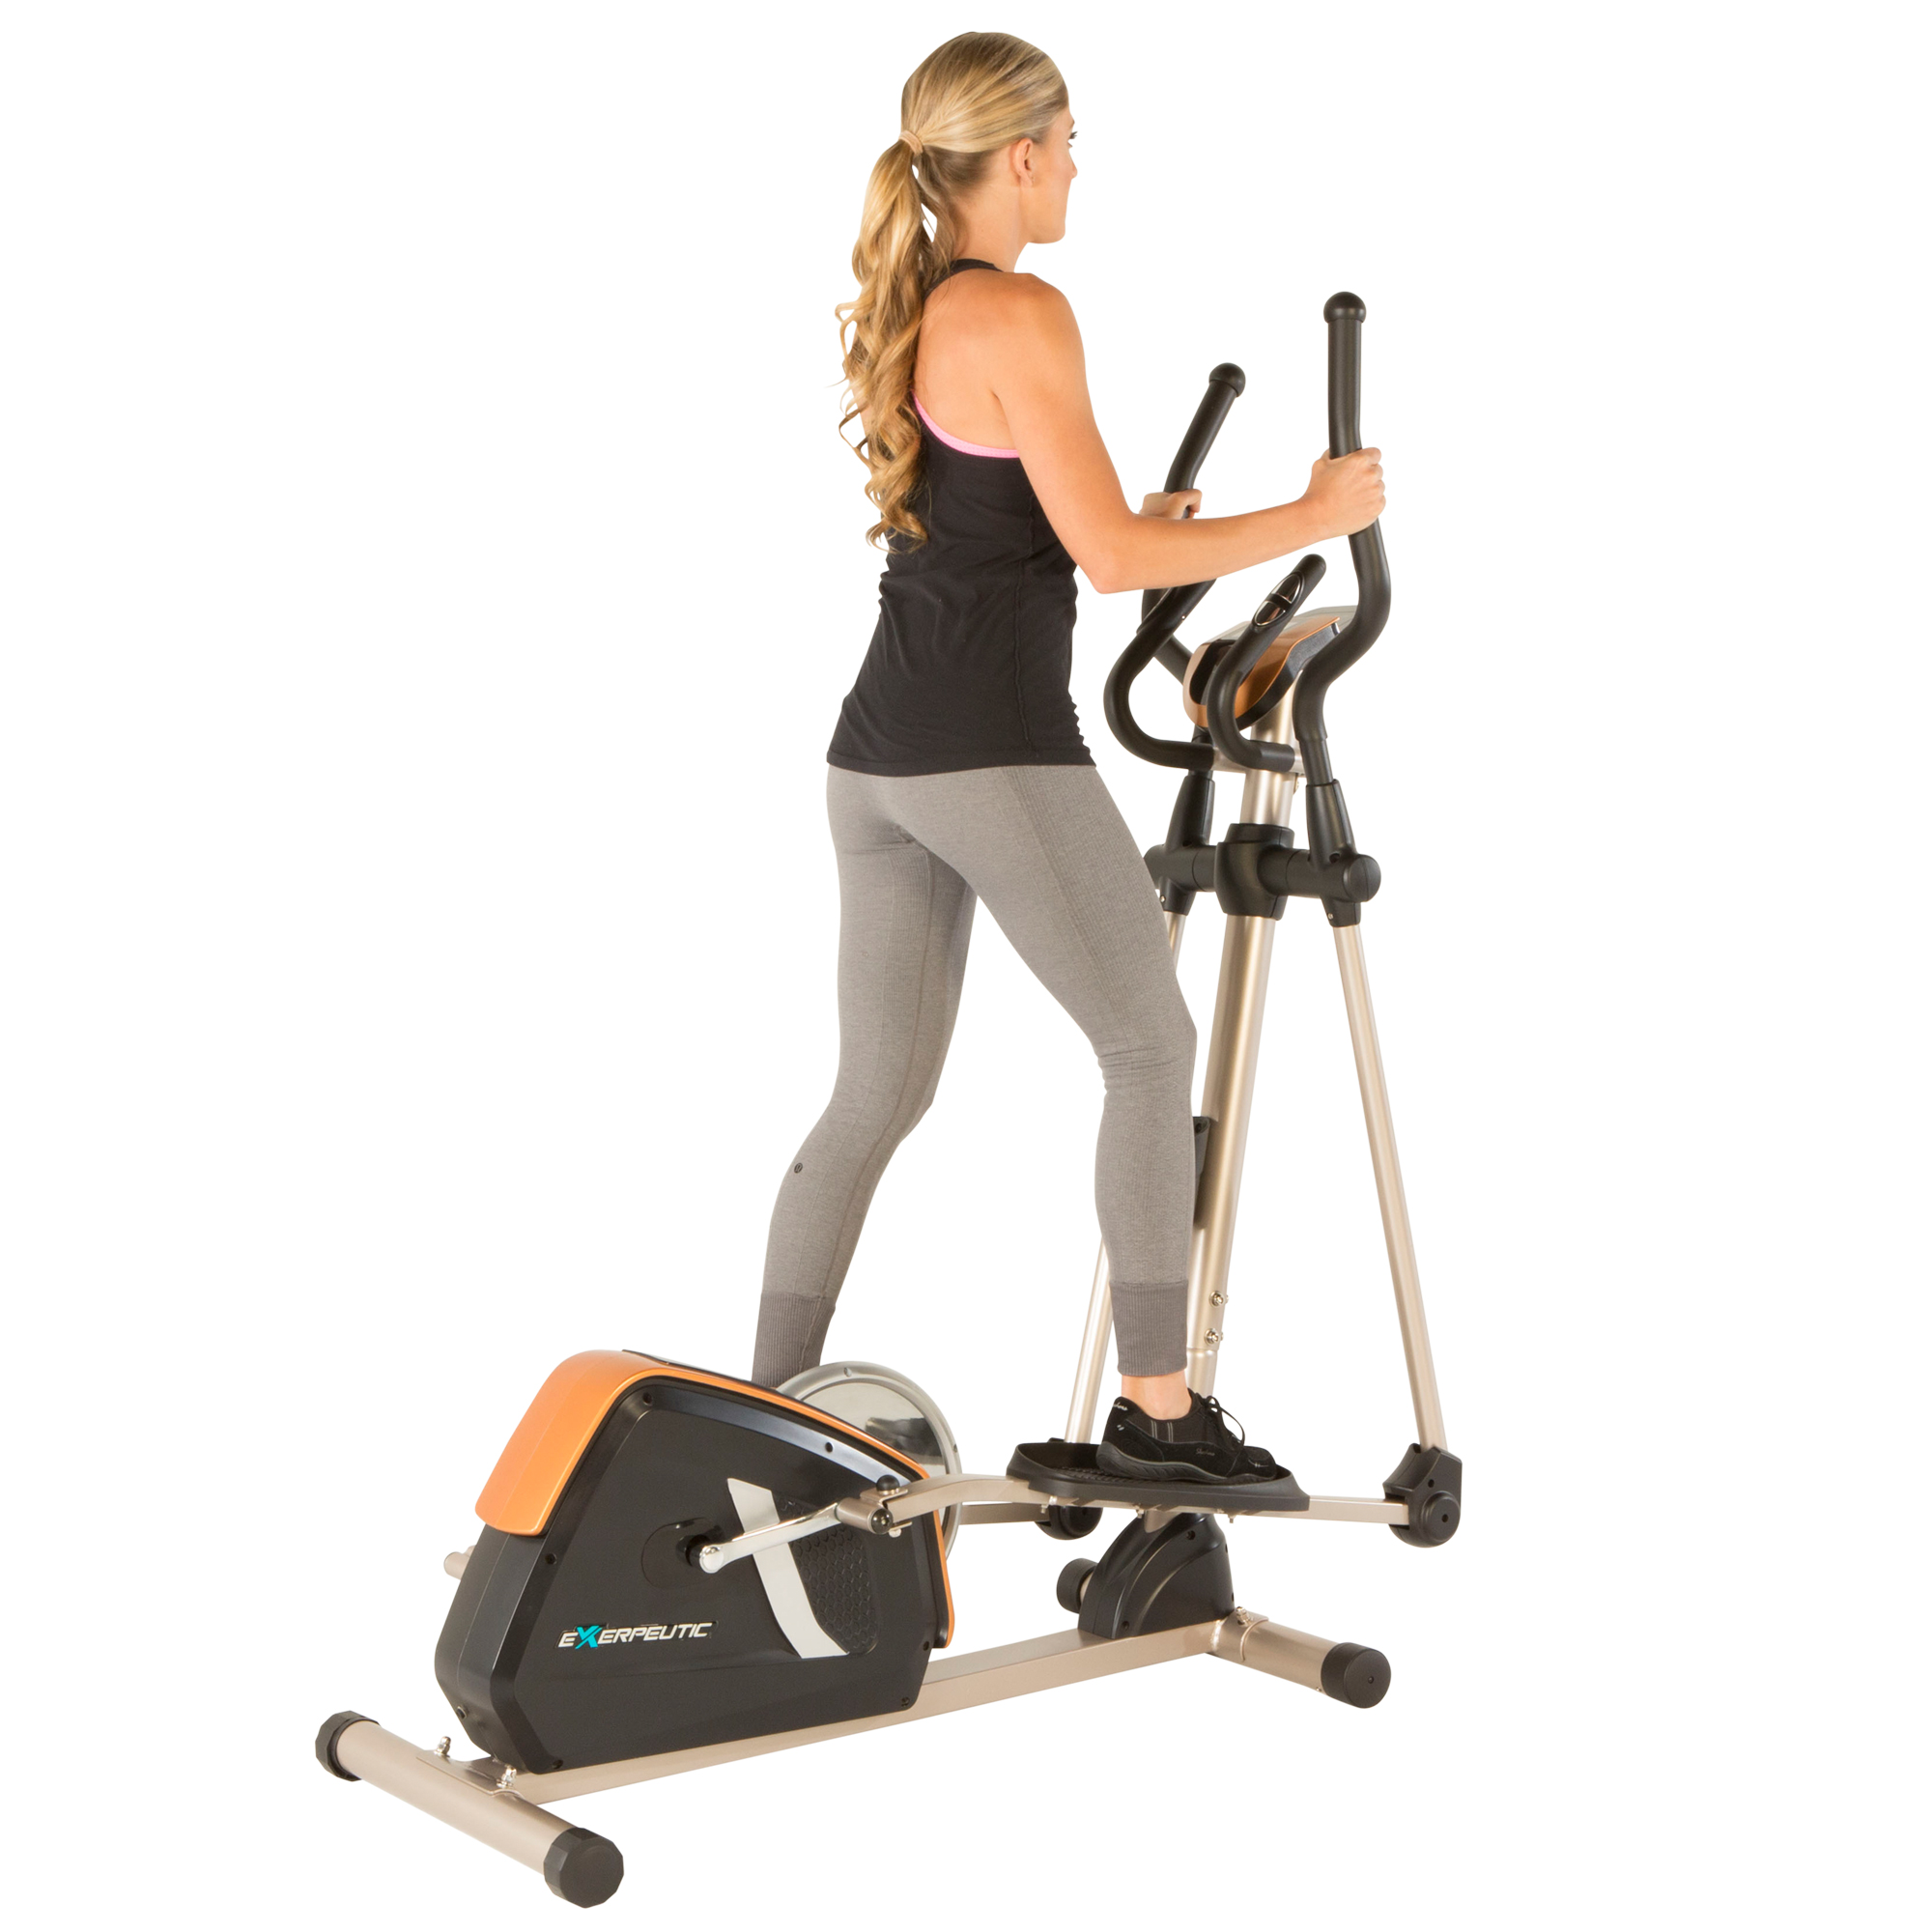 Exerpeutic GOLD 2000XLST Bluetooth Smart Technology Elliptical Trainer with Fitness Tracking App by Exerpeutic